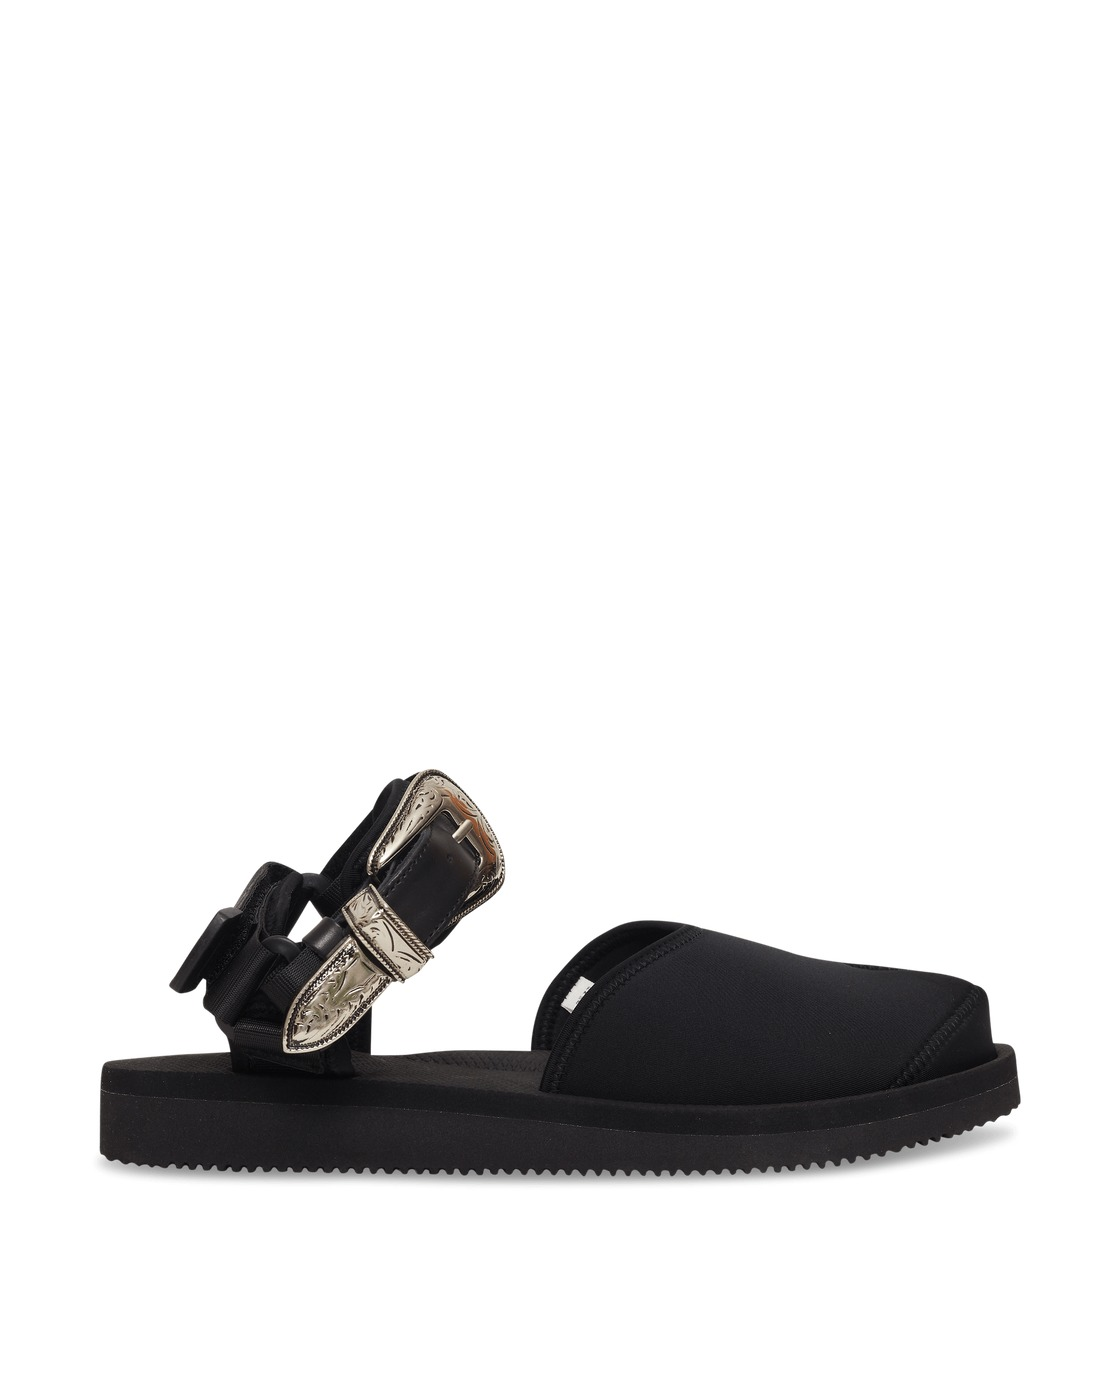 Photo: Suicoke Toga Vit 2tog Sandals Black